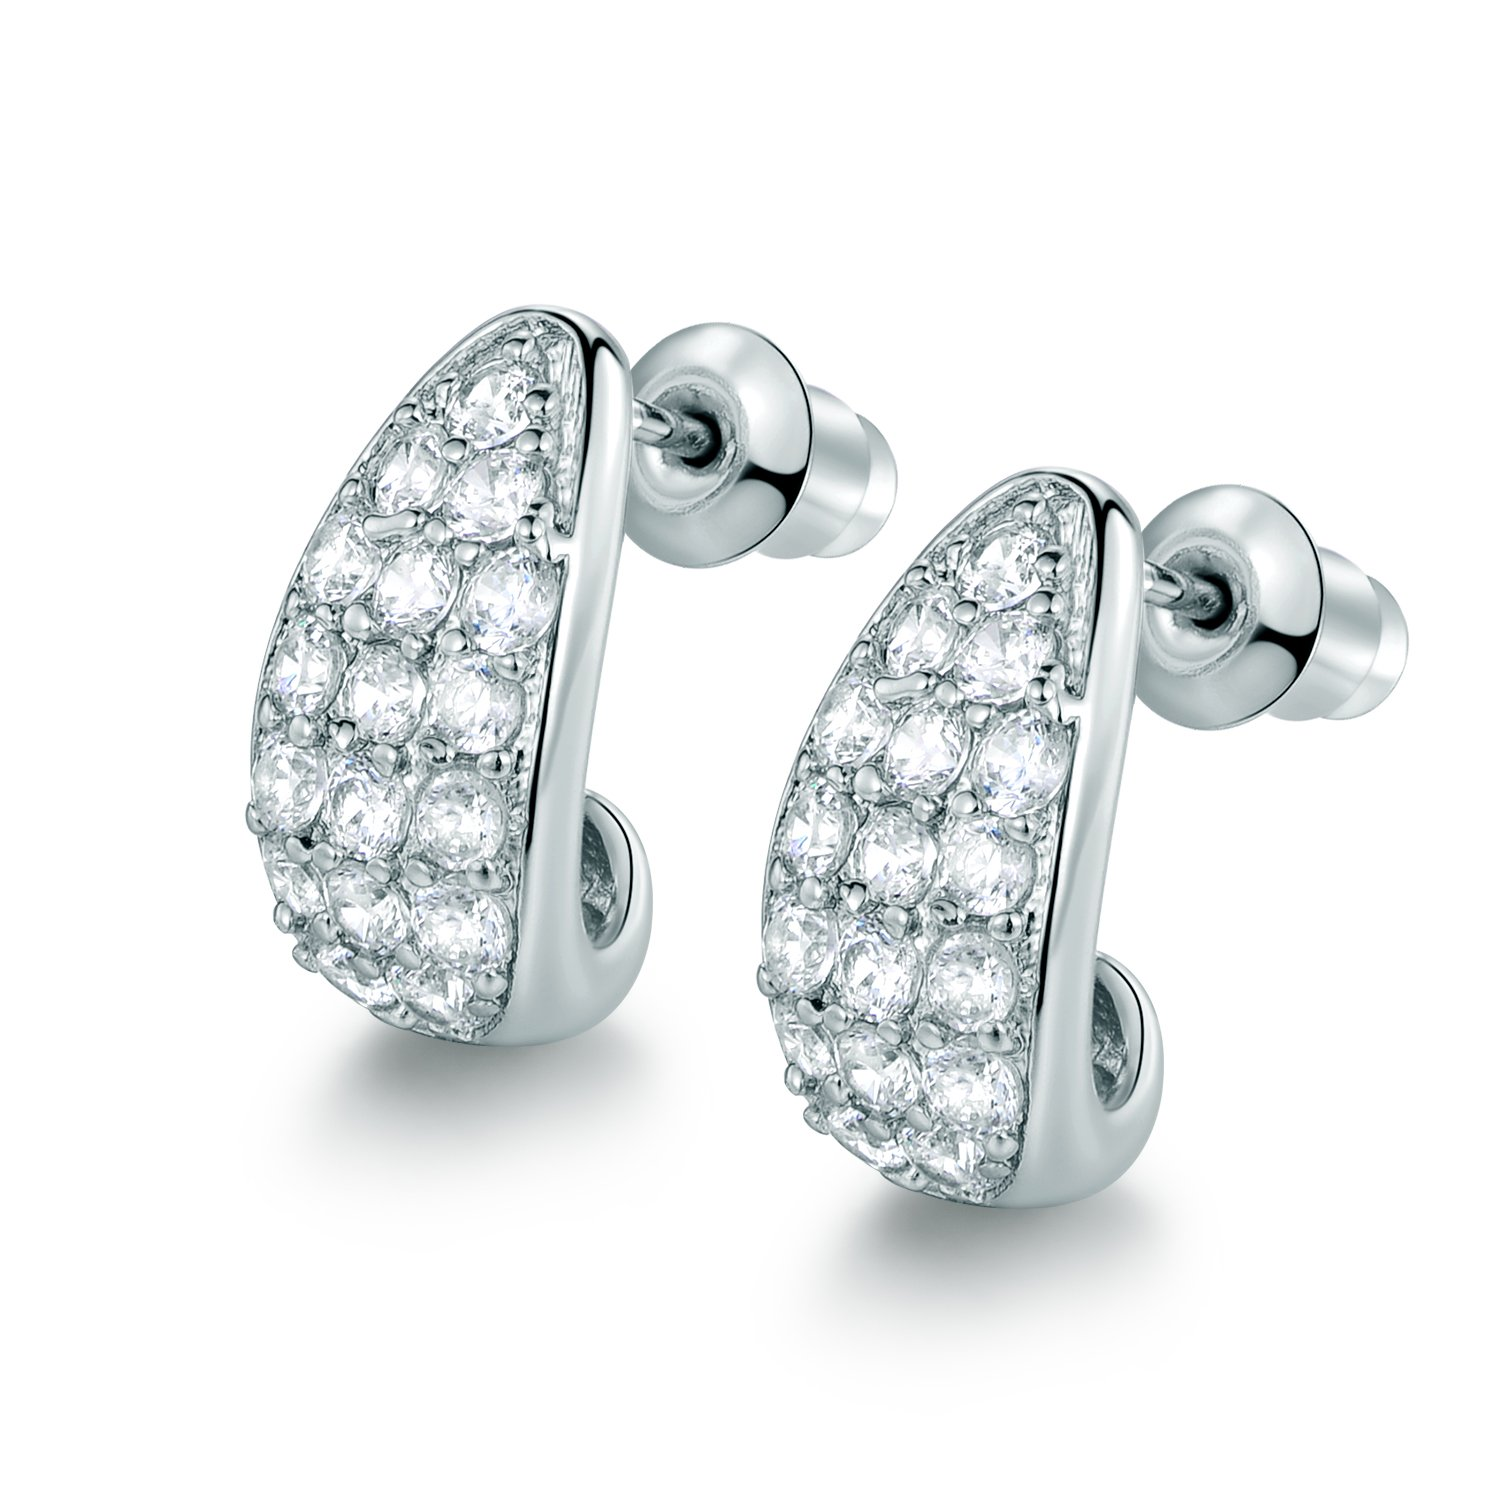 MASOP White Gold Plated Bending Stud Hoop Earrings With Clear Cubic